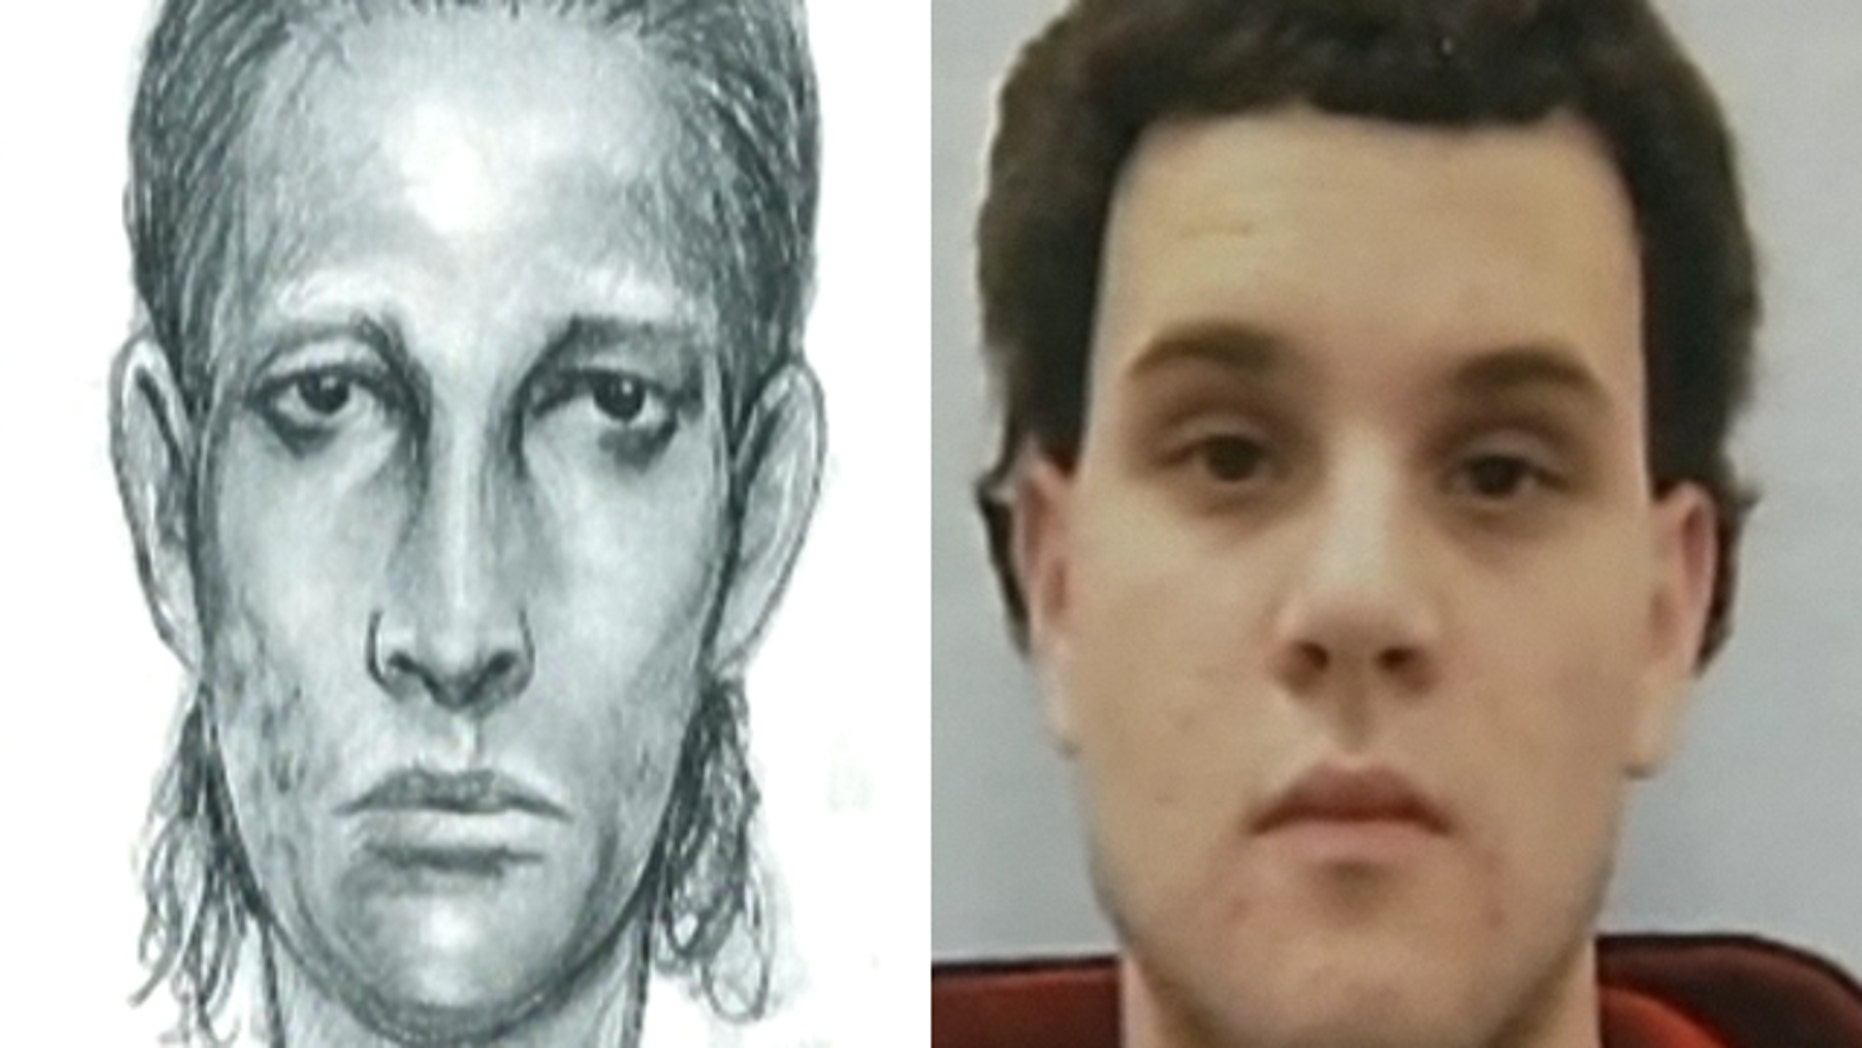 Mar. 24, 2012: This photo shows Joshua Basin, right, and a police sketch of his alleged attacker.